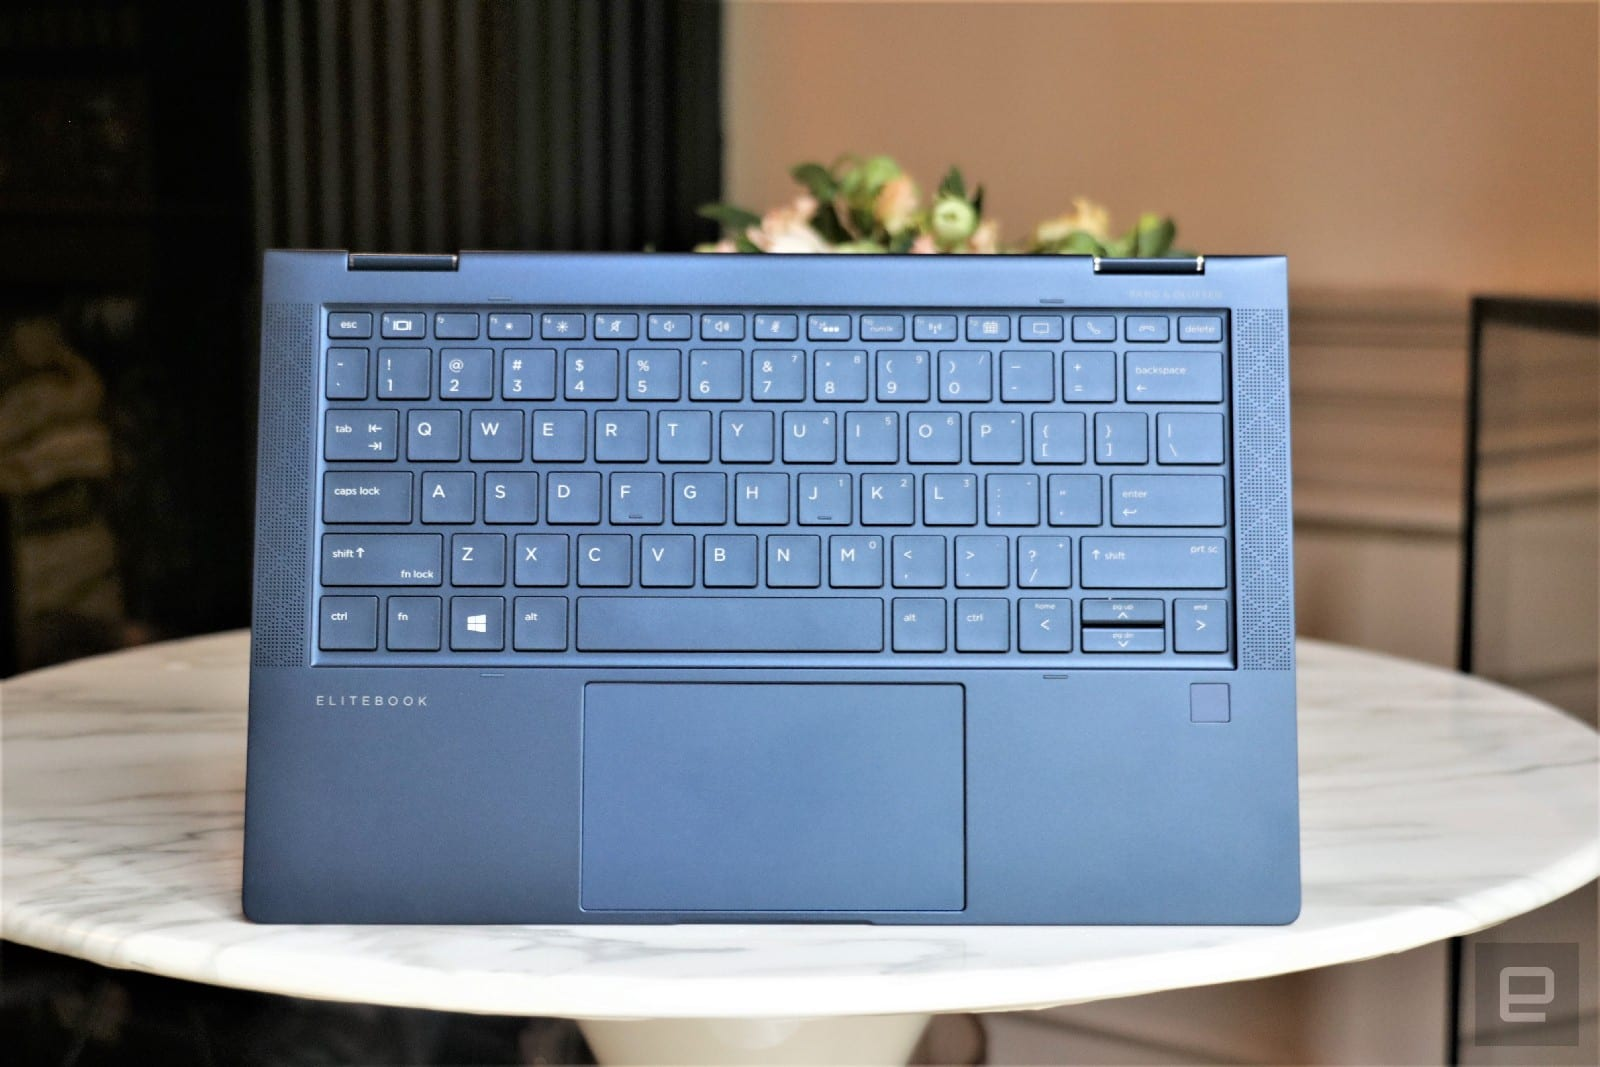 HP Elite Dragonfly hands-on